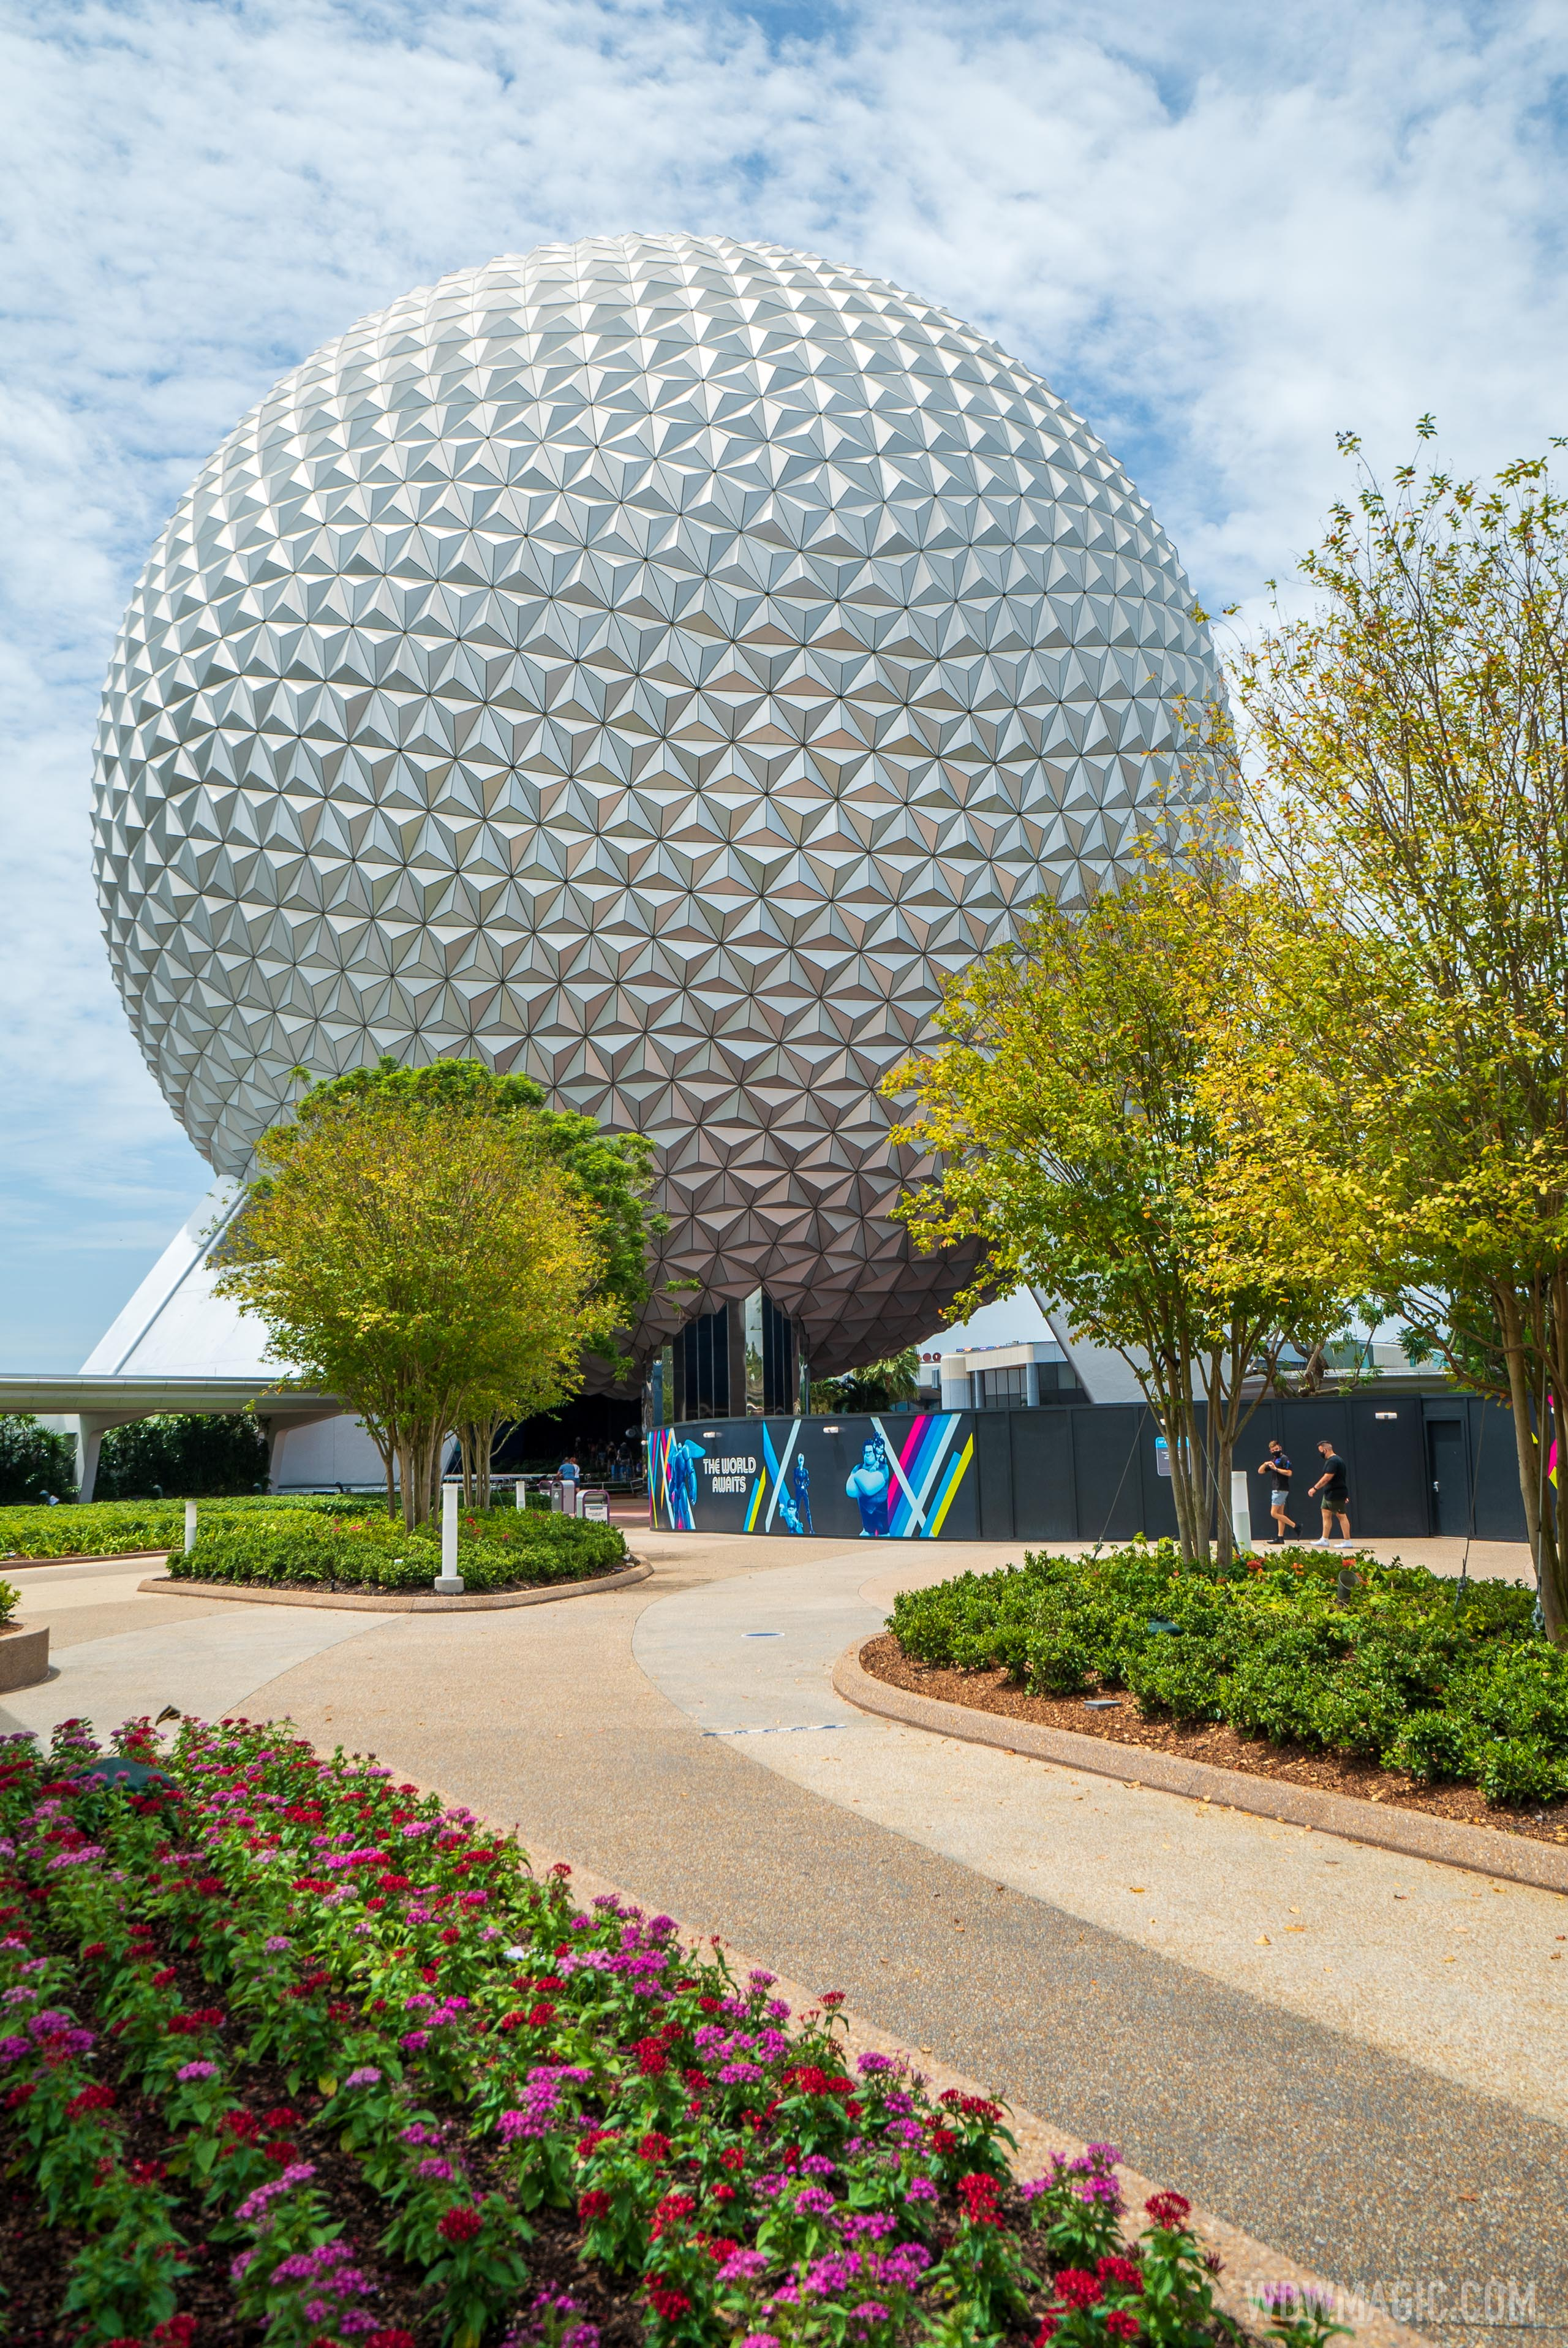 EPCOT is the only option for Annual Passholders for the remainder of August